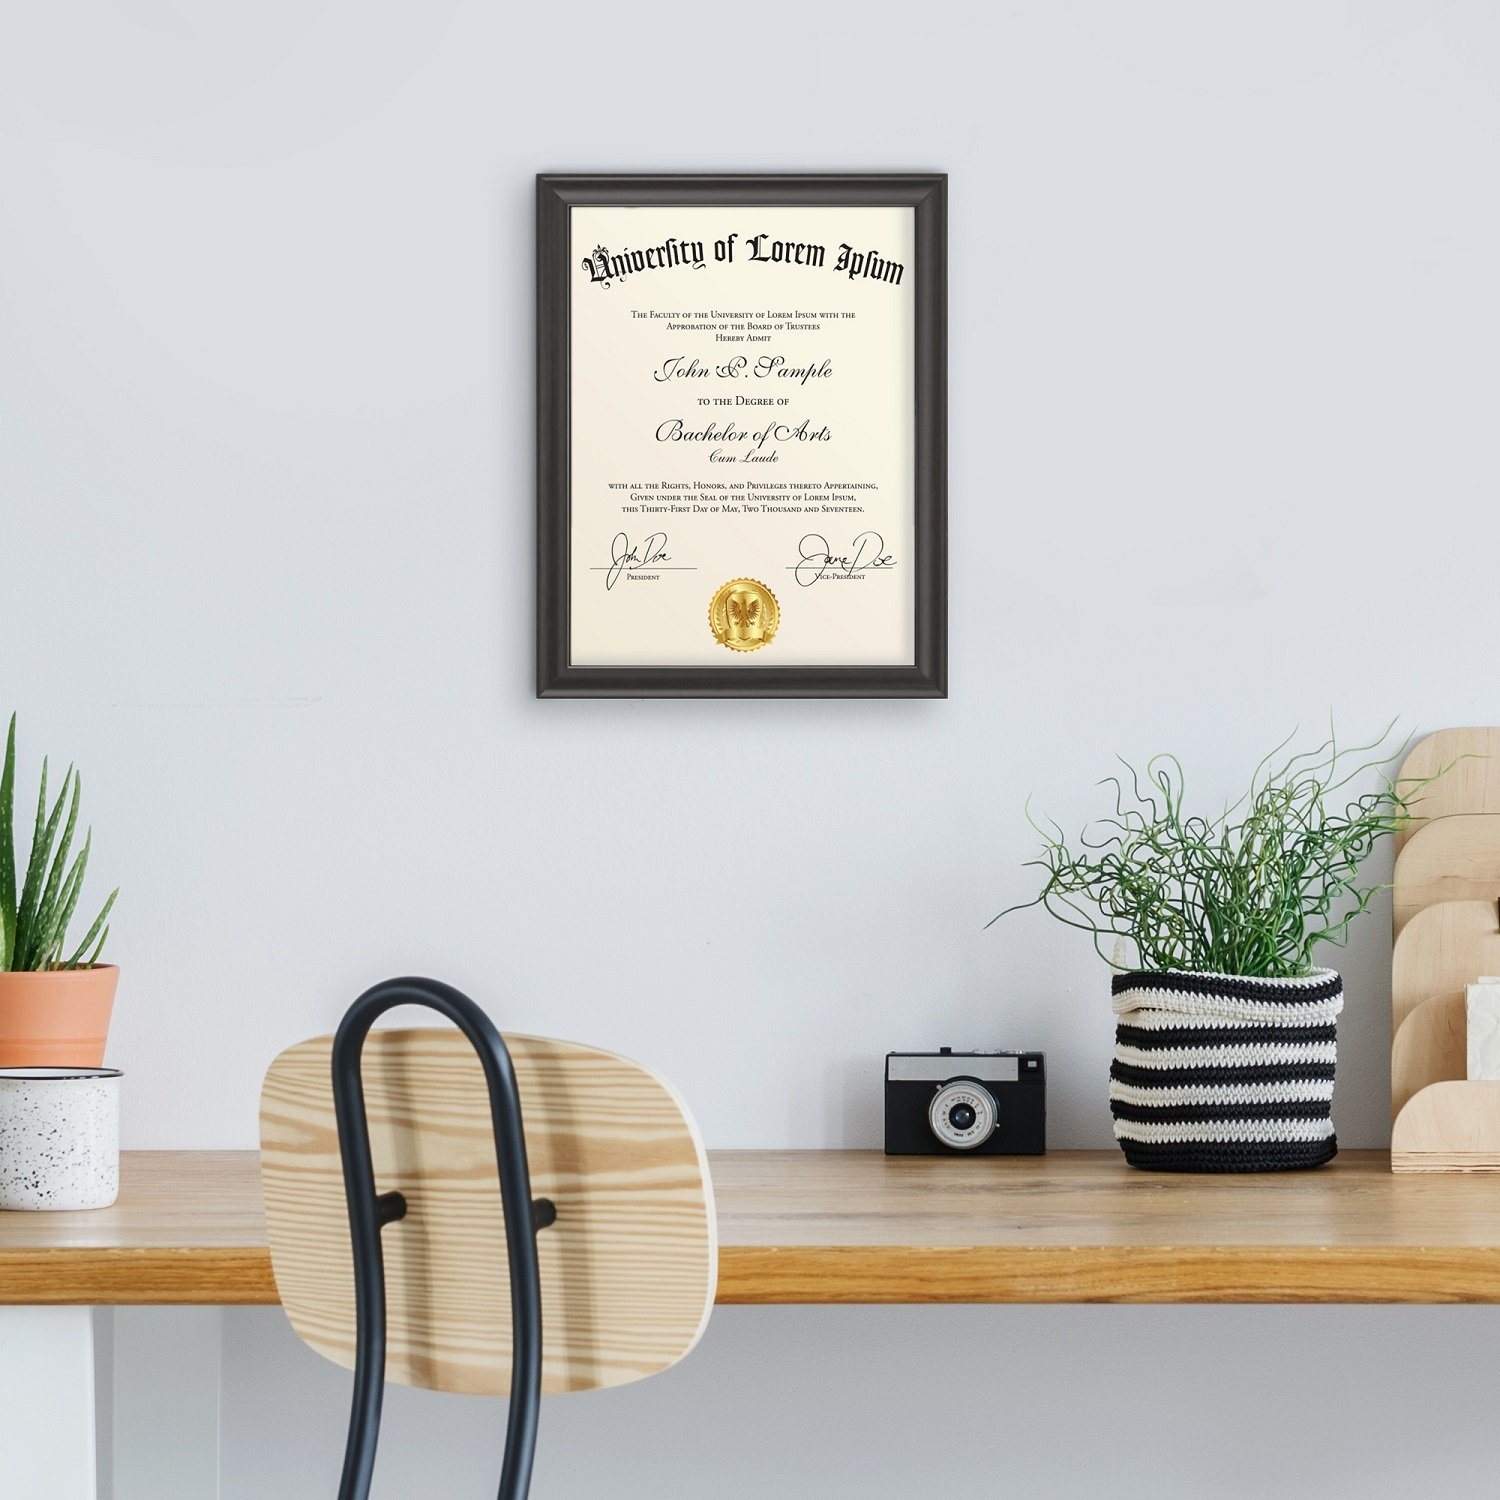 Icona Bay 8.5x11 Document Frame (12 Pack, Black), Black Certificate Frame 8.5 x 11, Composite Wood Diploma Frame for Walls or Tables, Set of 12 Lakeland Collection by Icona Bay (Image #8)